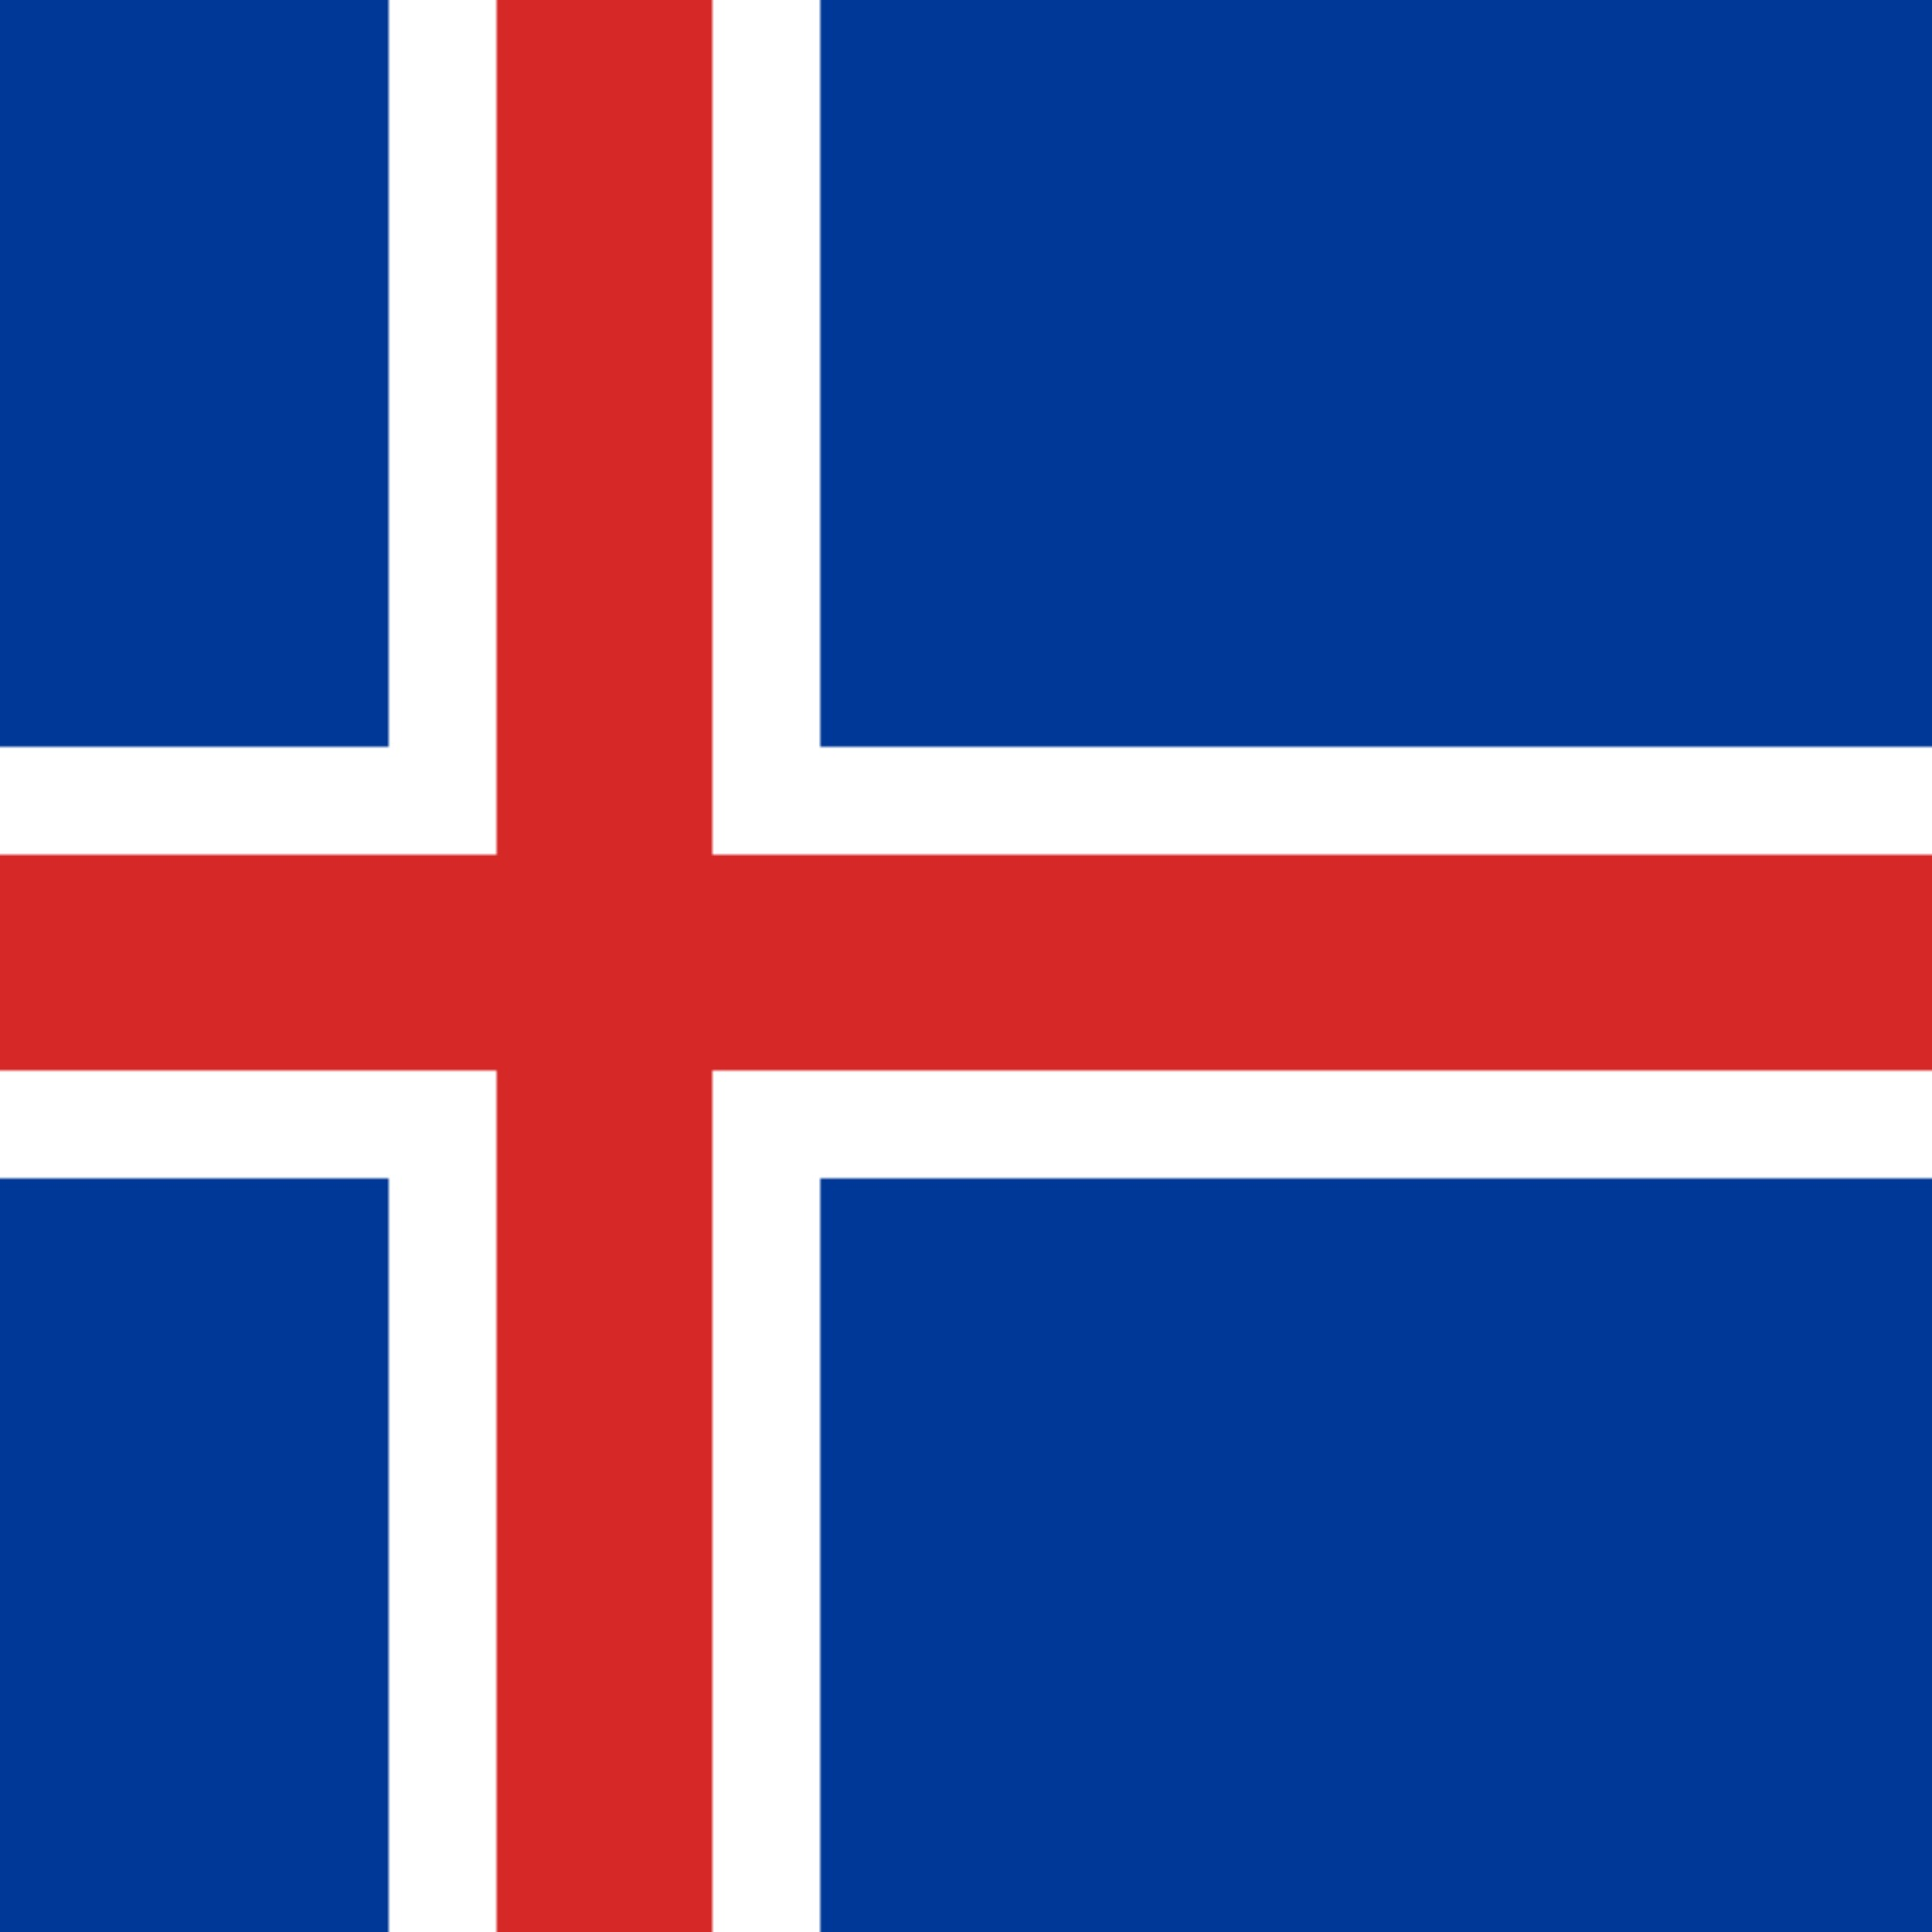 Honorary Consulate of Iceland (Benidorm)